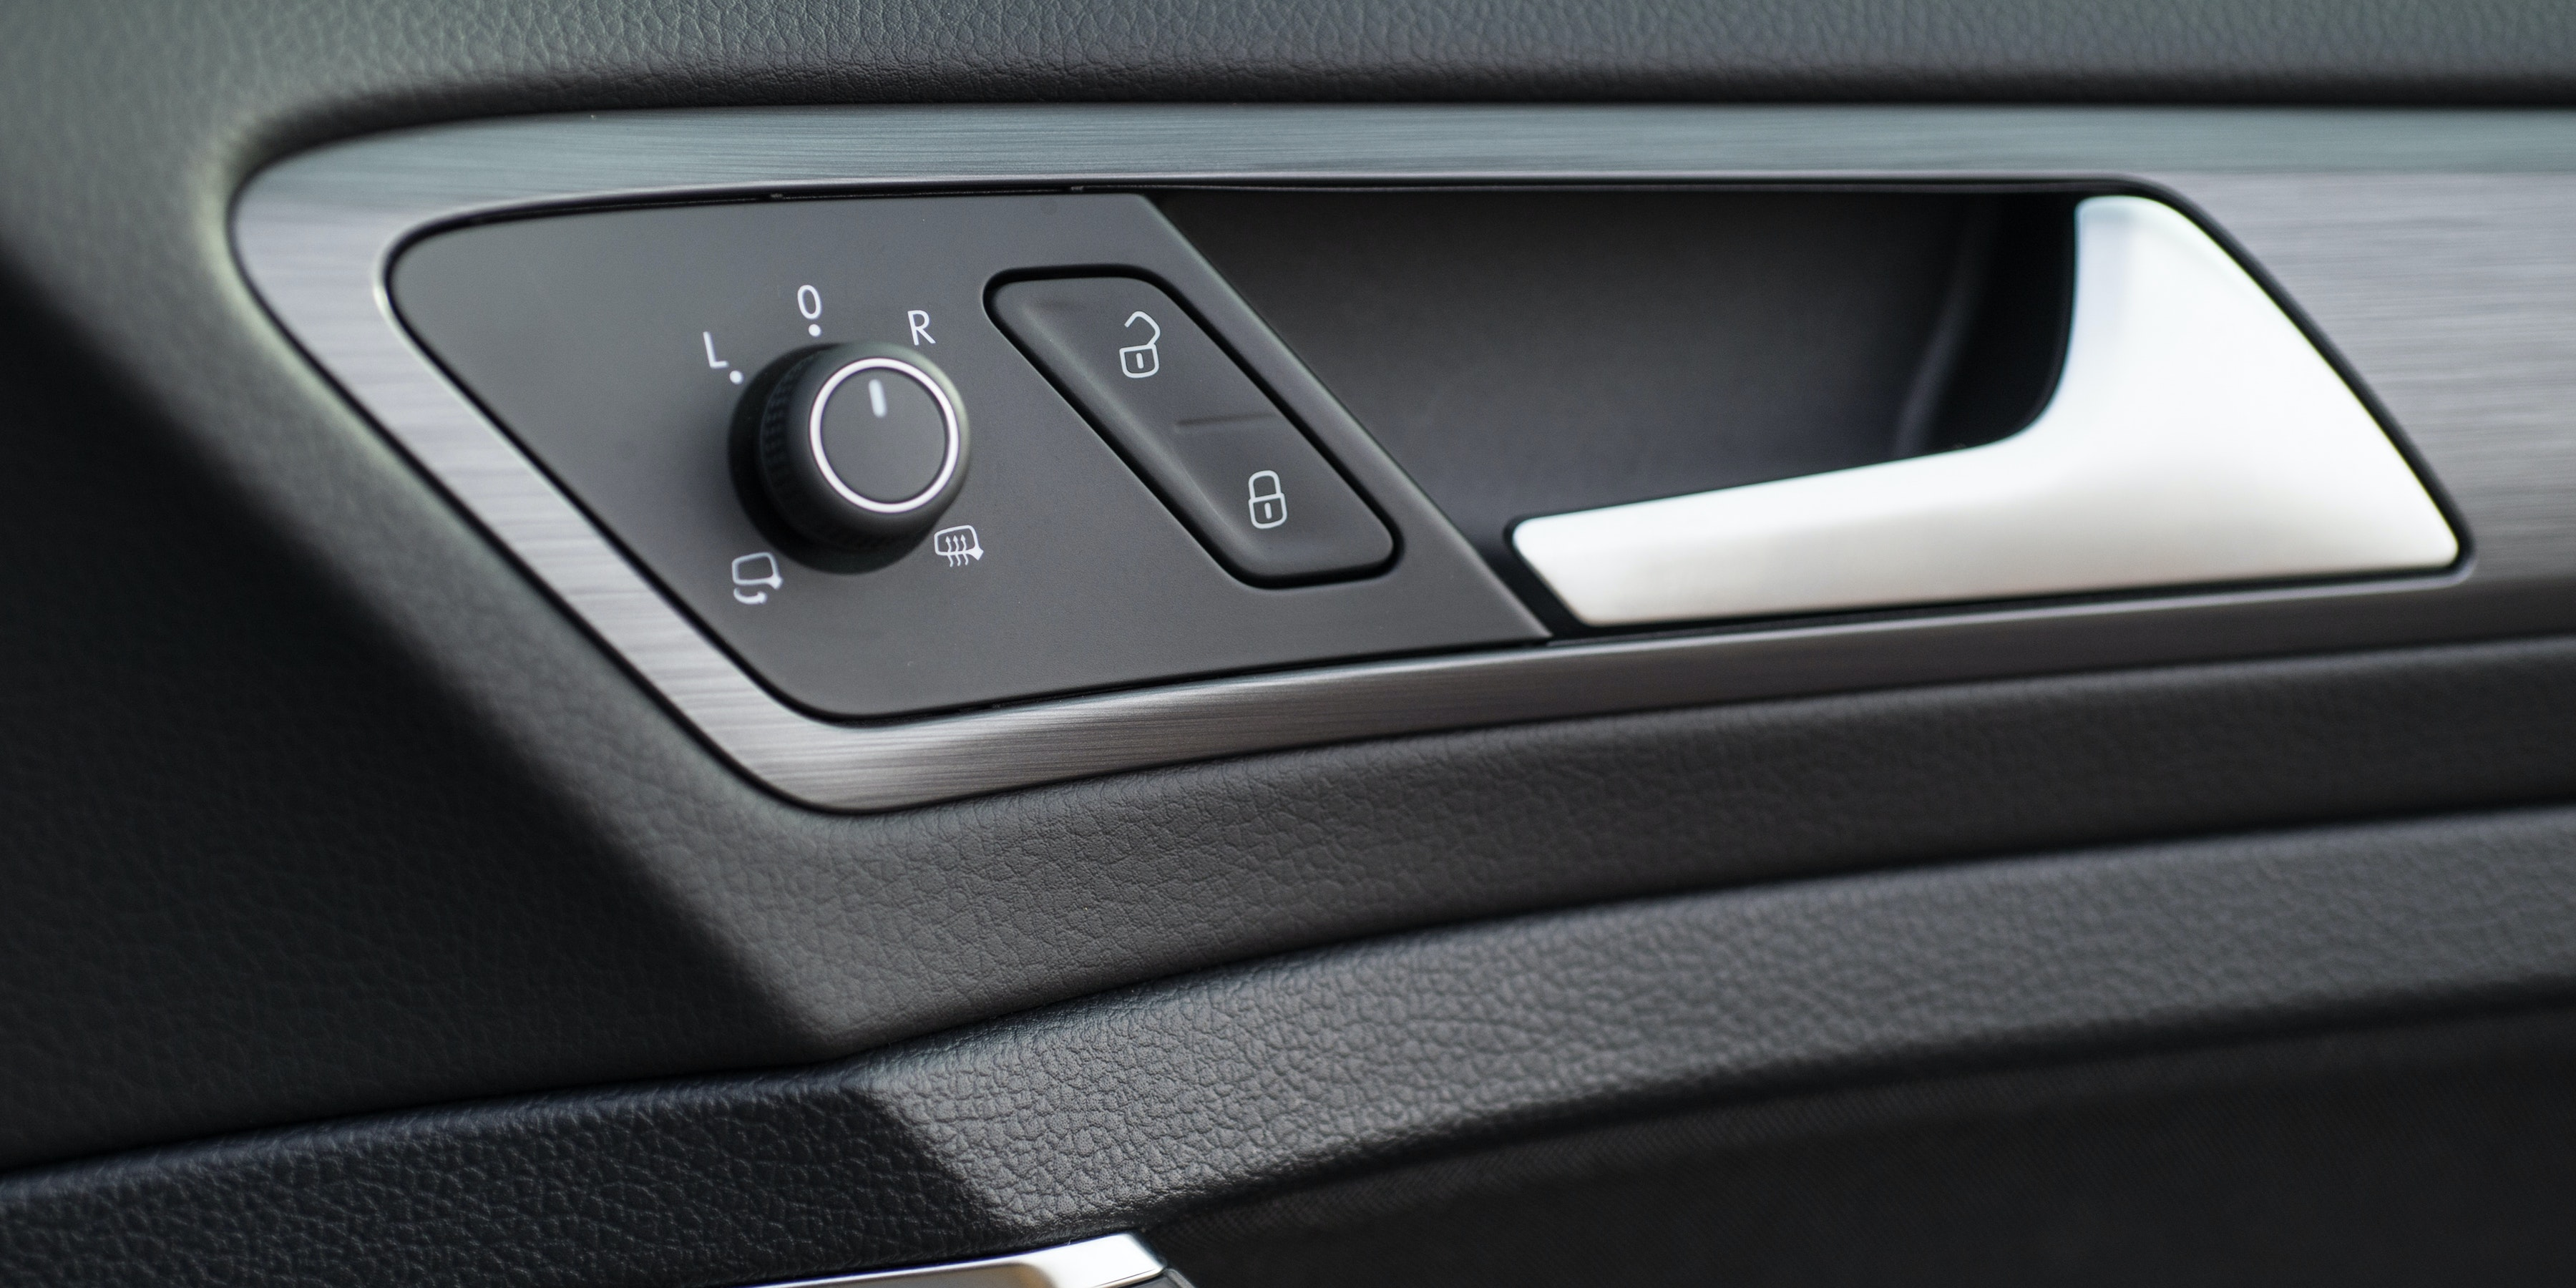 For the R, the regular Golf's dash is livened up with carbon fibre-effect trim pieces